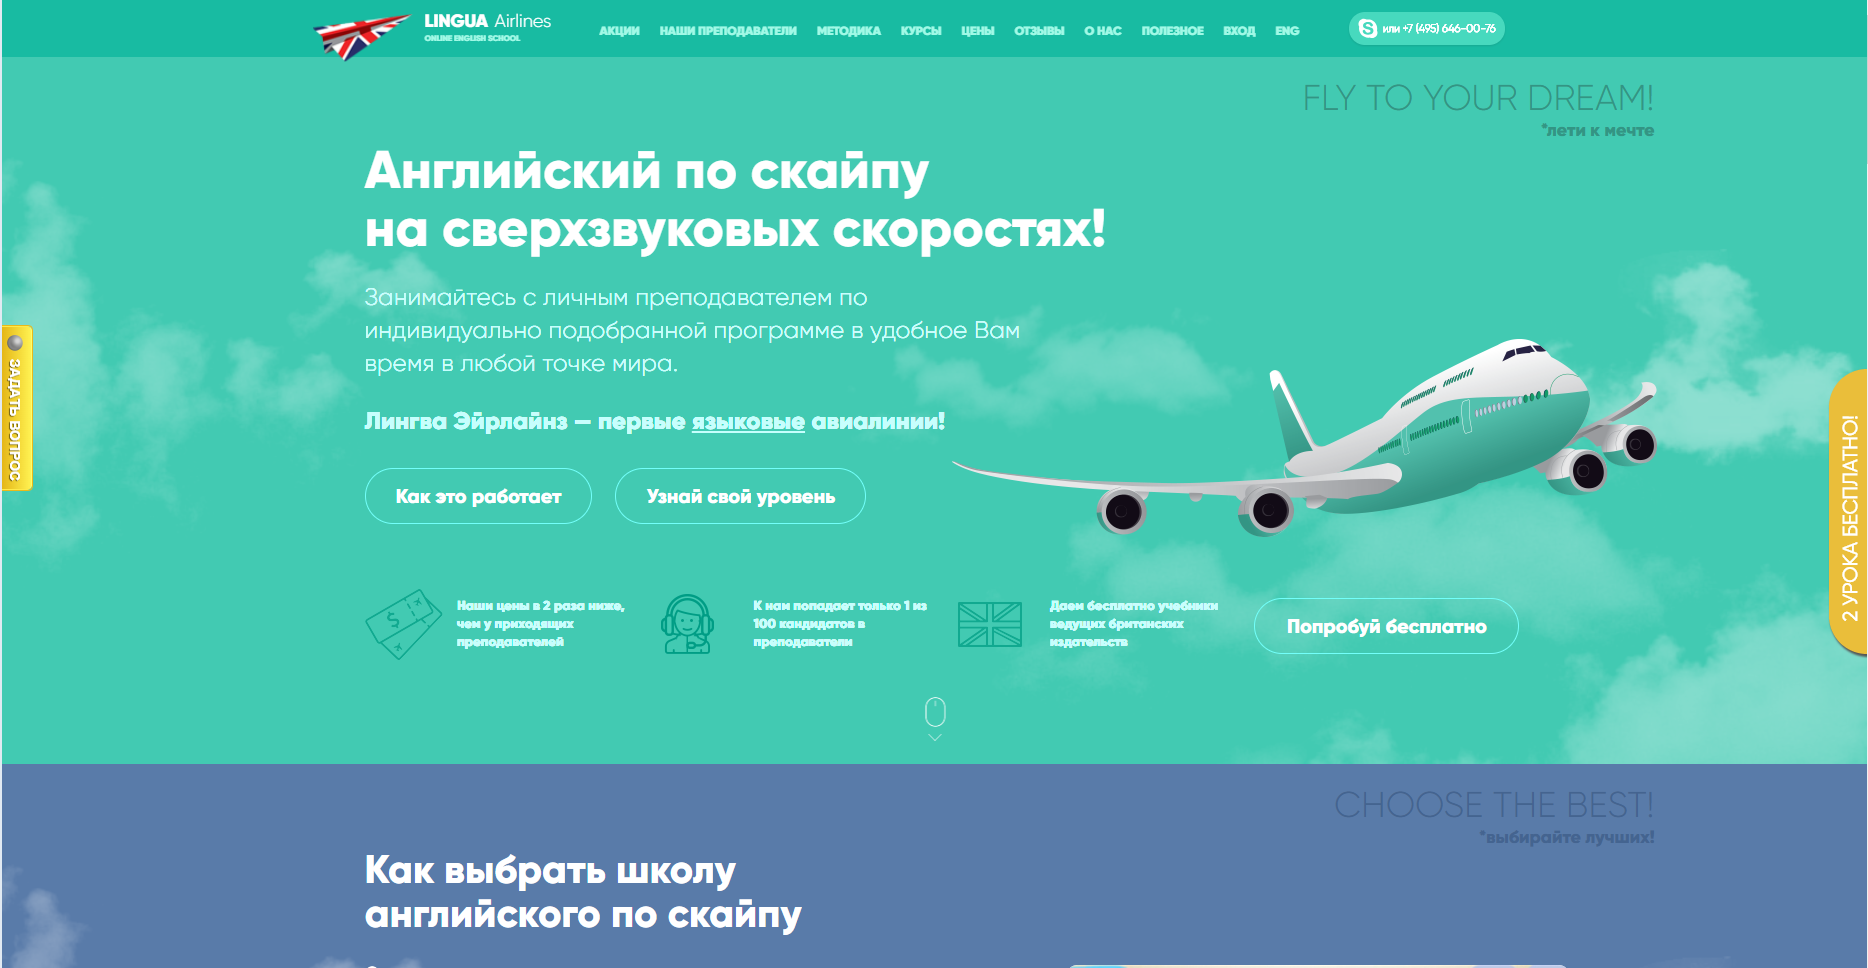 https://lingua-airlines.ru